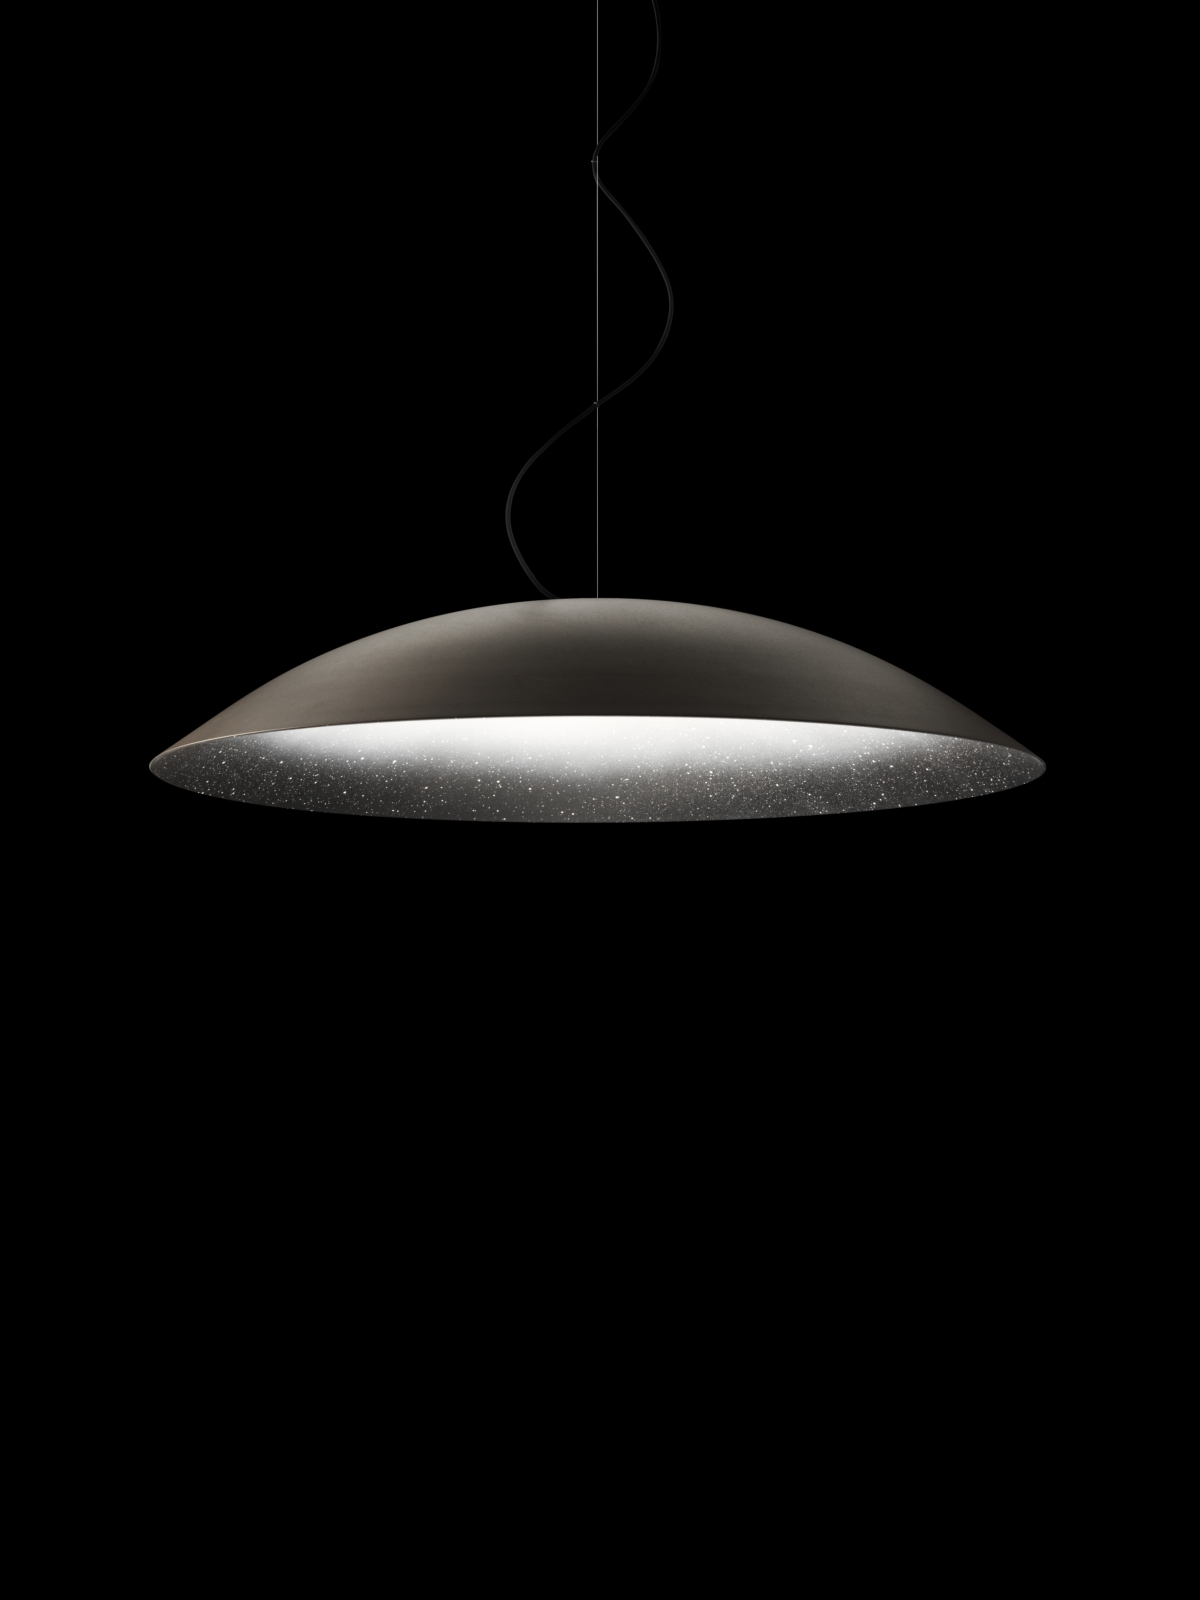 Diesel with Foscarini Living pendant lamp still WhiteNoise